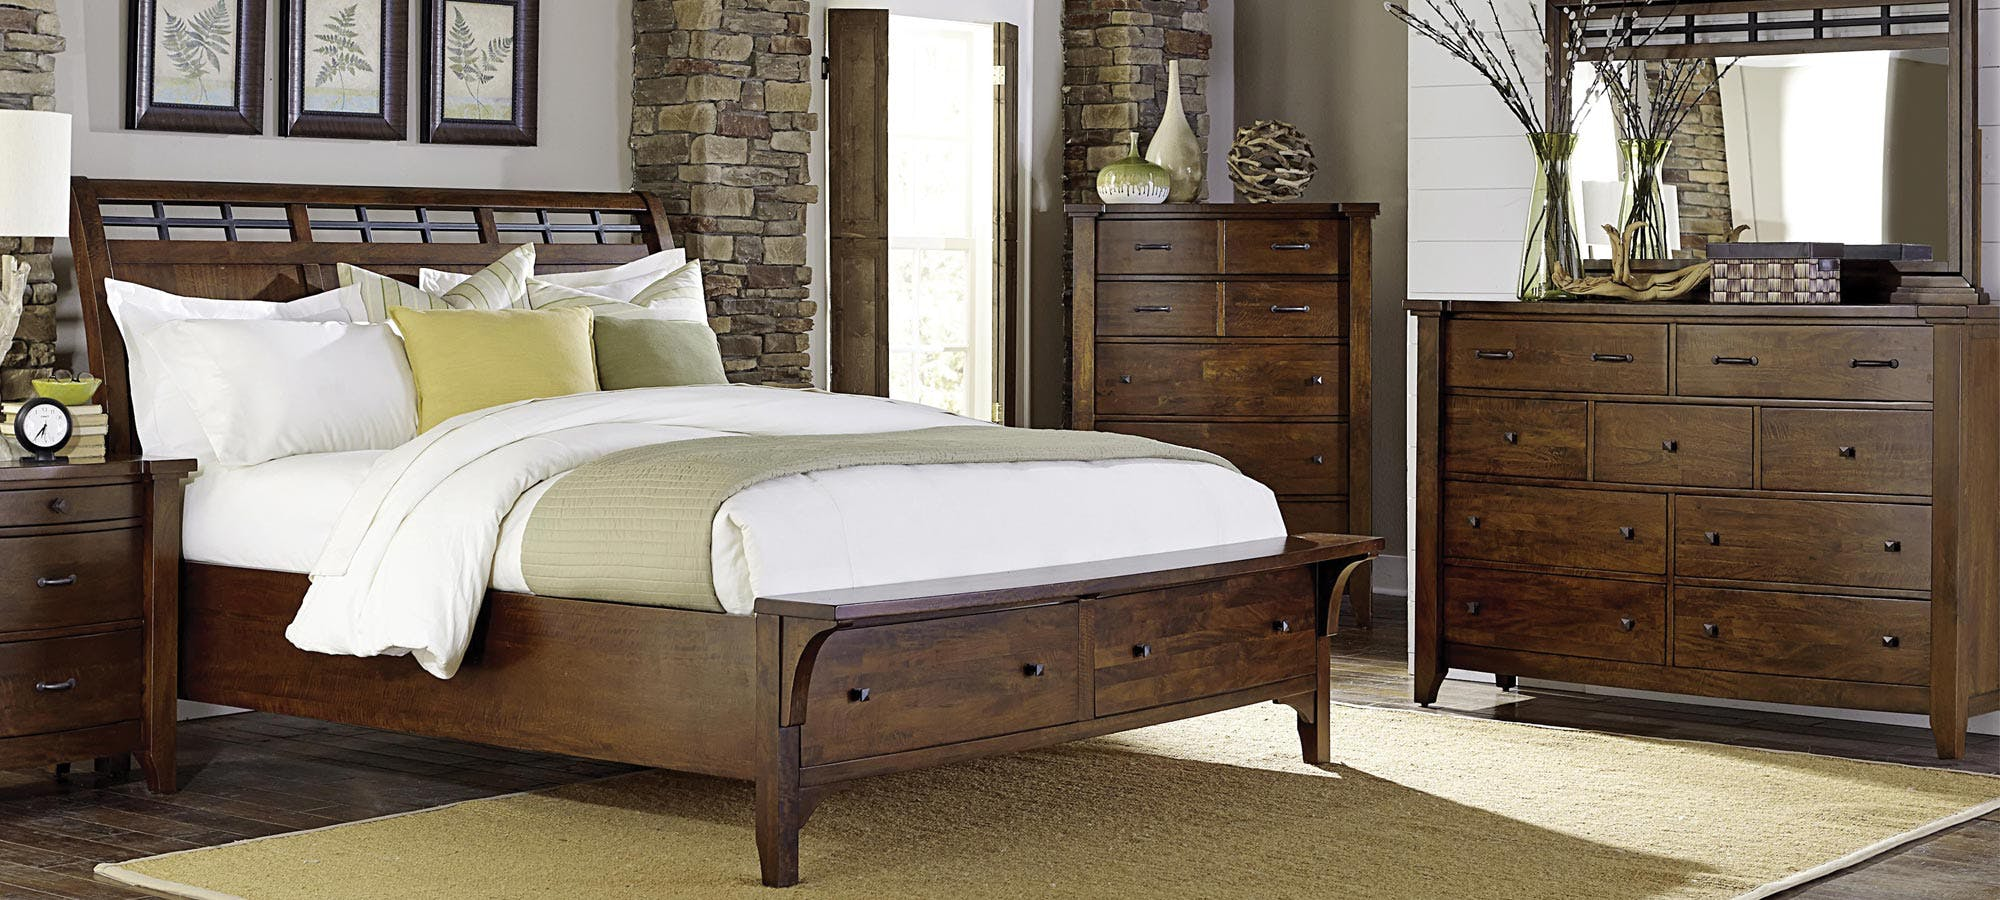 Shop For Bedroom Furniture In Cincinnati And Dayton OH